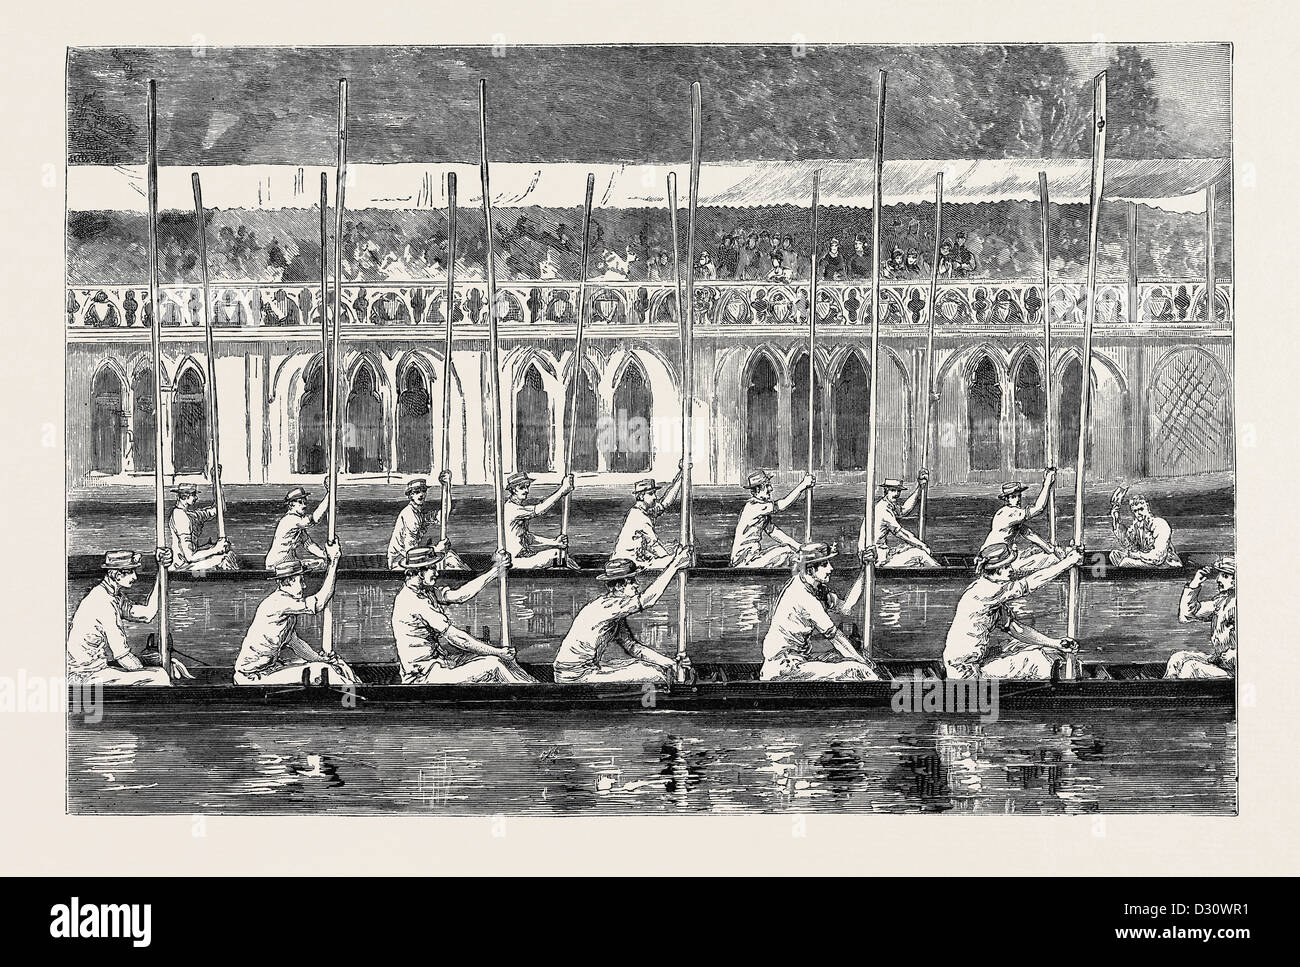 OXFORD: PROCESSION NIGHT, THE BOATS SALUTING THE 'HEAD OF THE RIVER' IN FRONT OF THE 'VARSITY BARGE - Stock Image